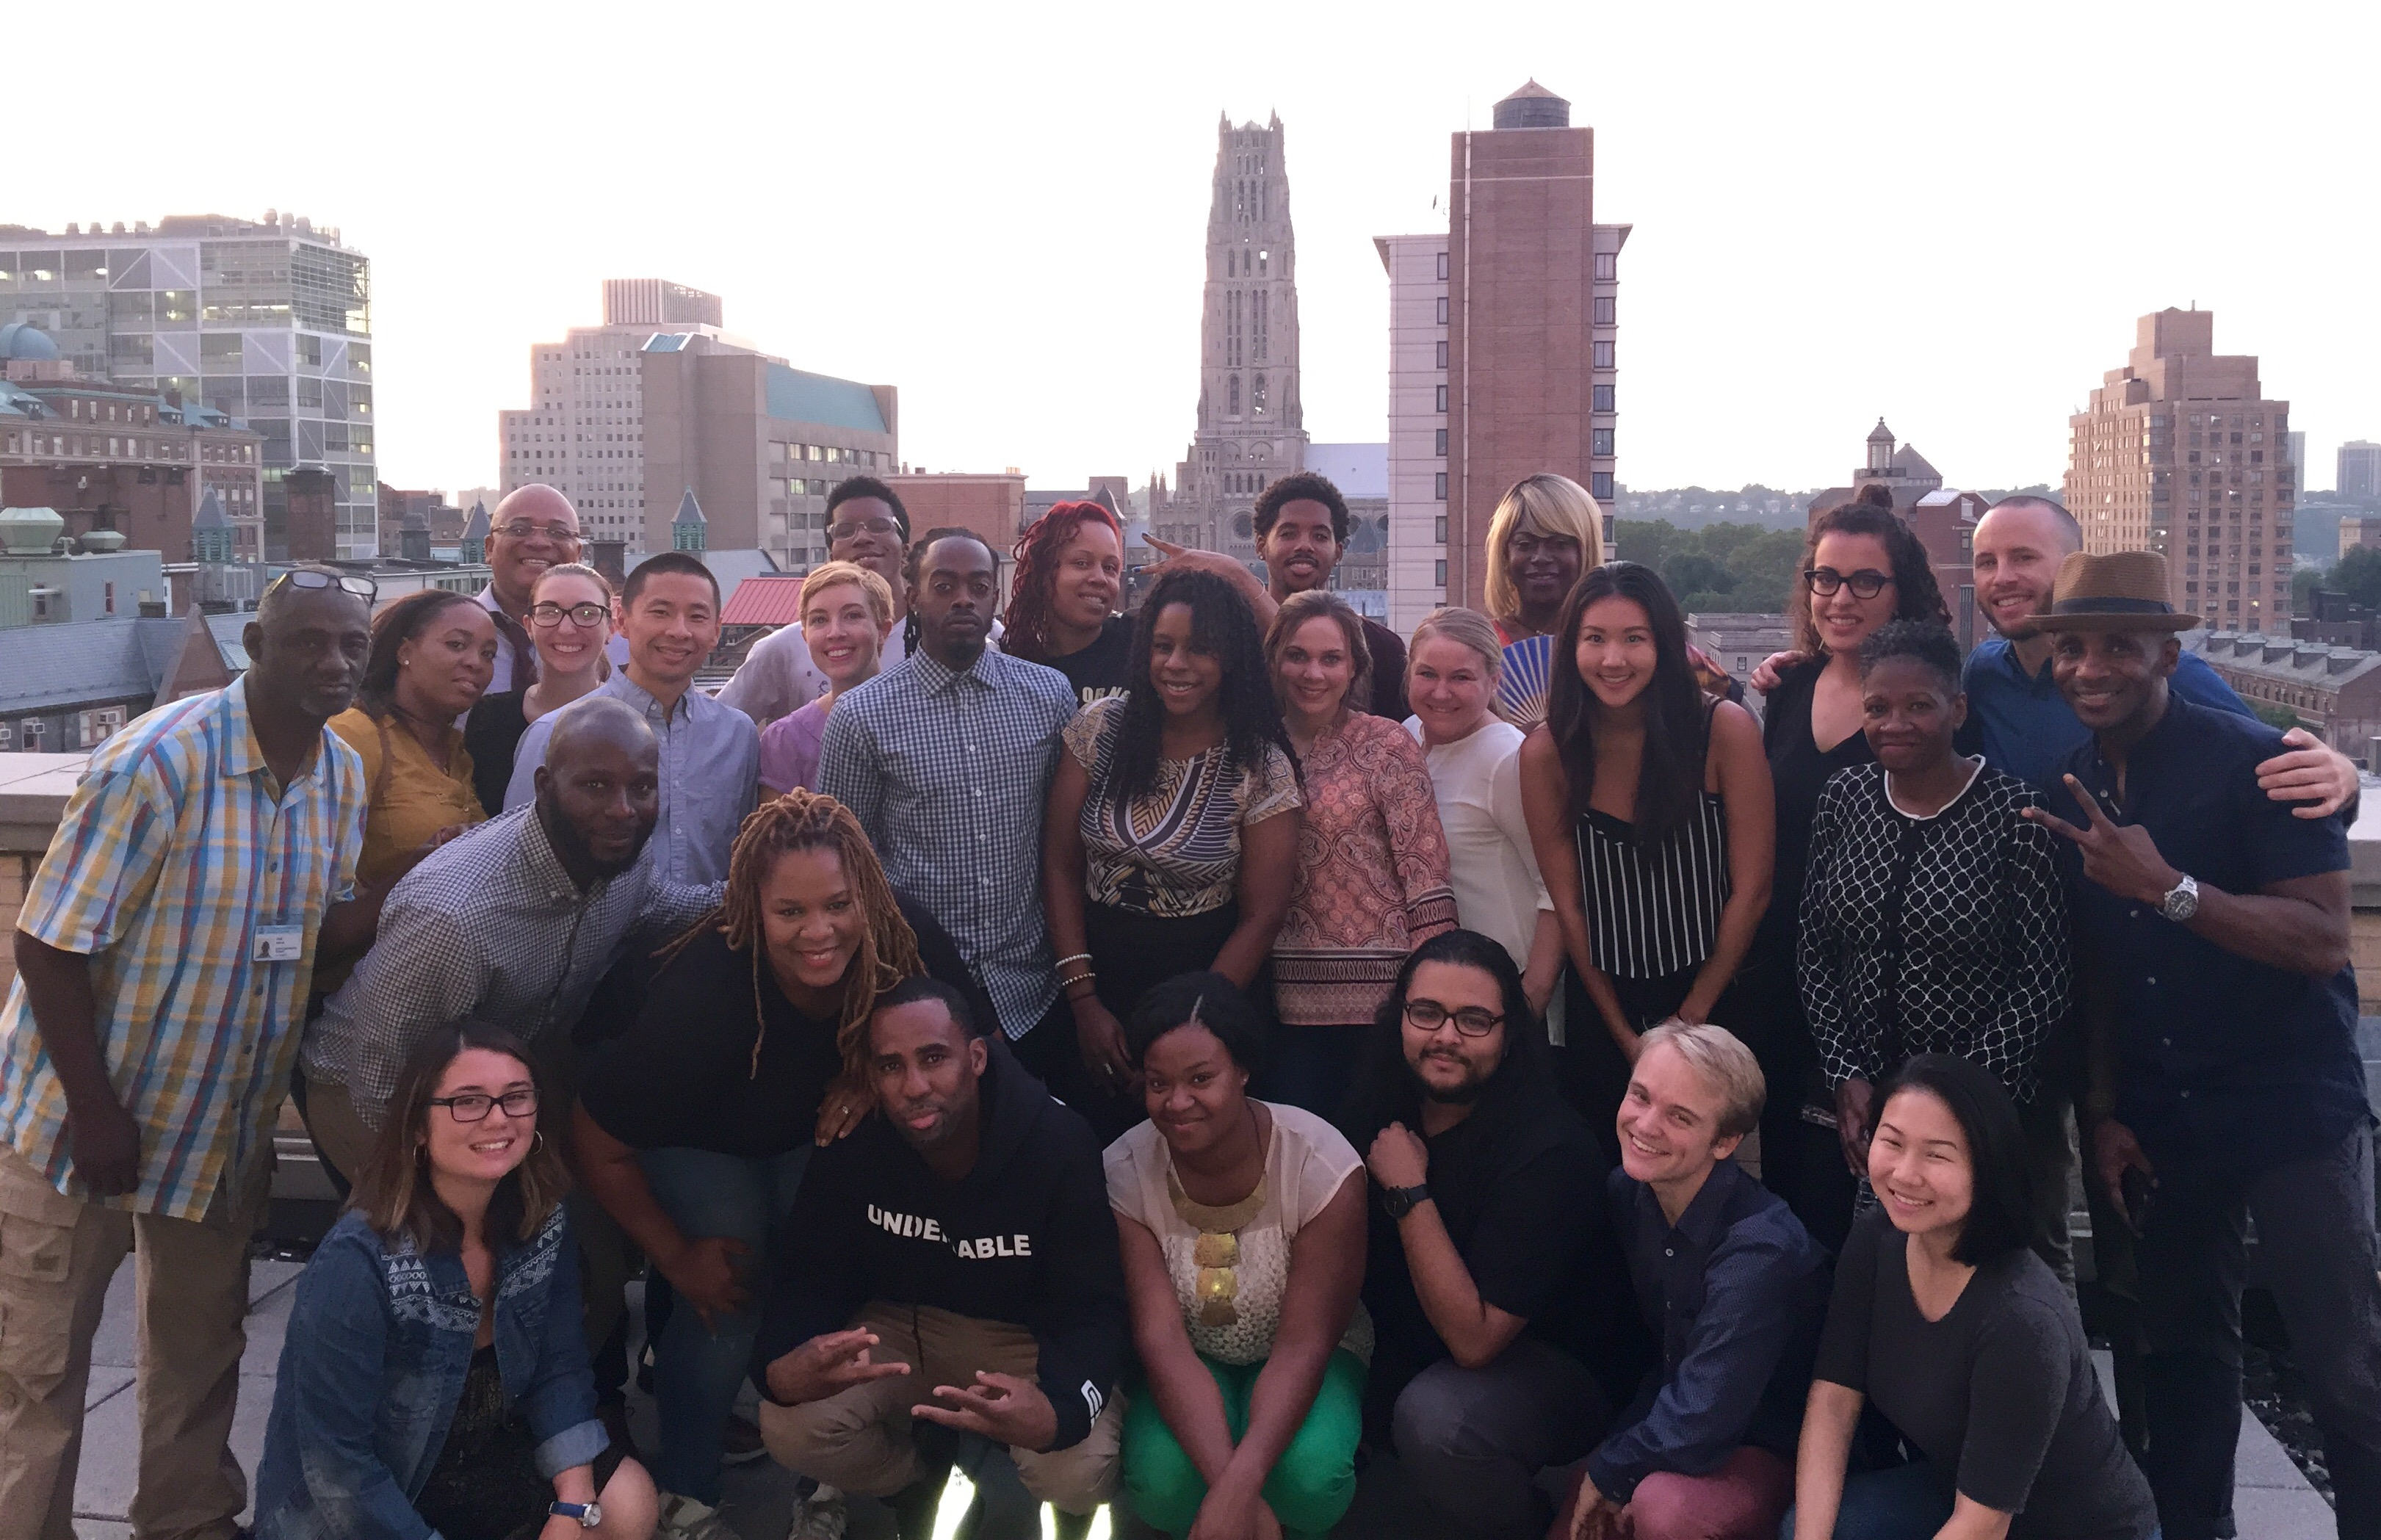 2016–17 Beyond the Bars Fellows from many schools across Columbia (Social Work, Teachers College, Columbia College, Arts, Public Health); other colleges (Rutgers, New York University, Borough of Manhattan Community College); and a variety of community and government organizations (Osborne Association, Vera Institute of Justice, Red Umbrella Project, Fortune Society, VIBE magazine, Center for Court Innovations)